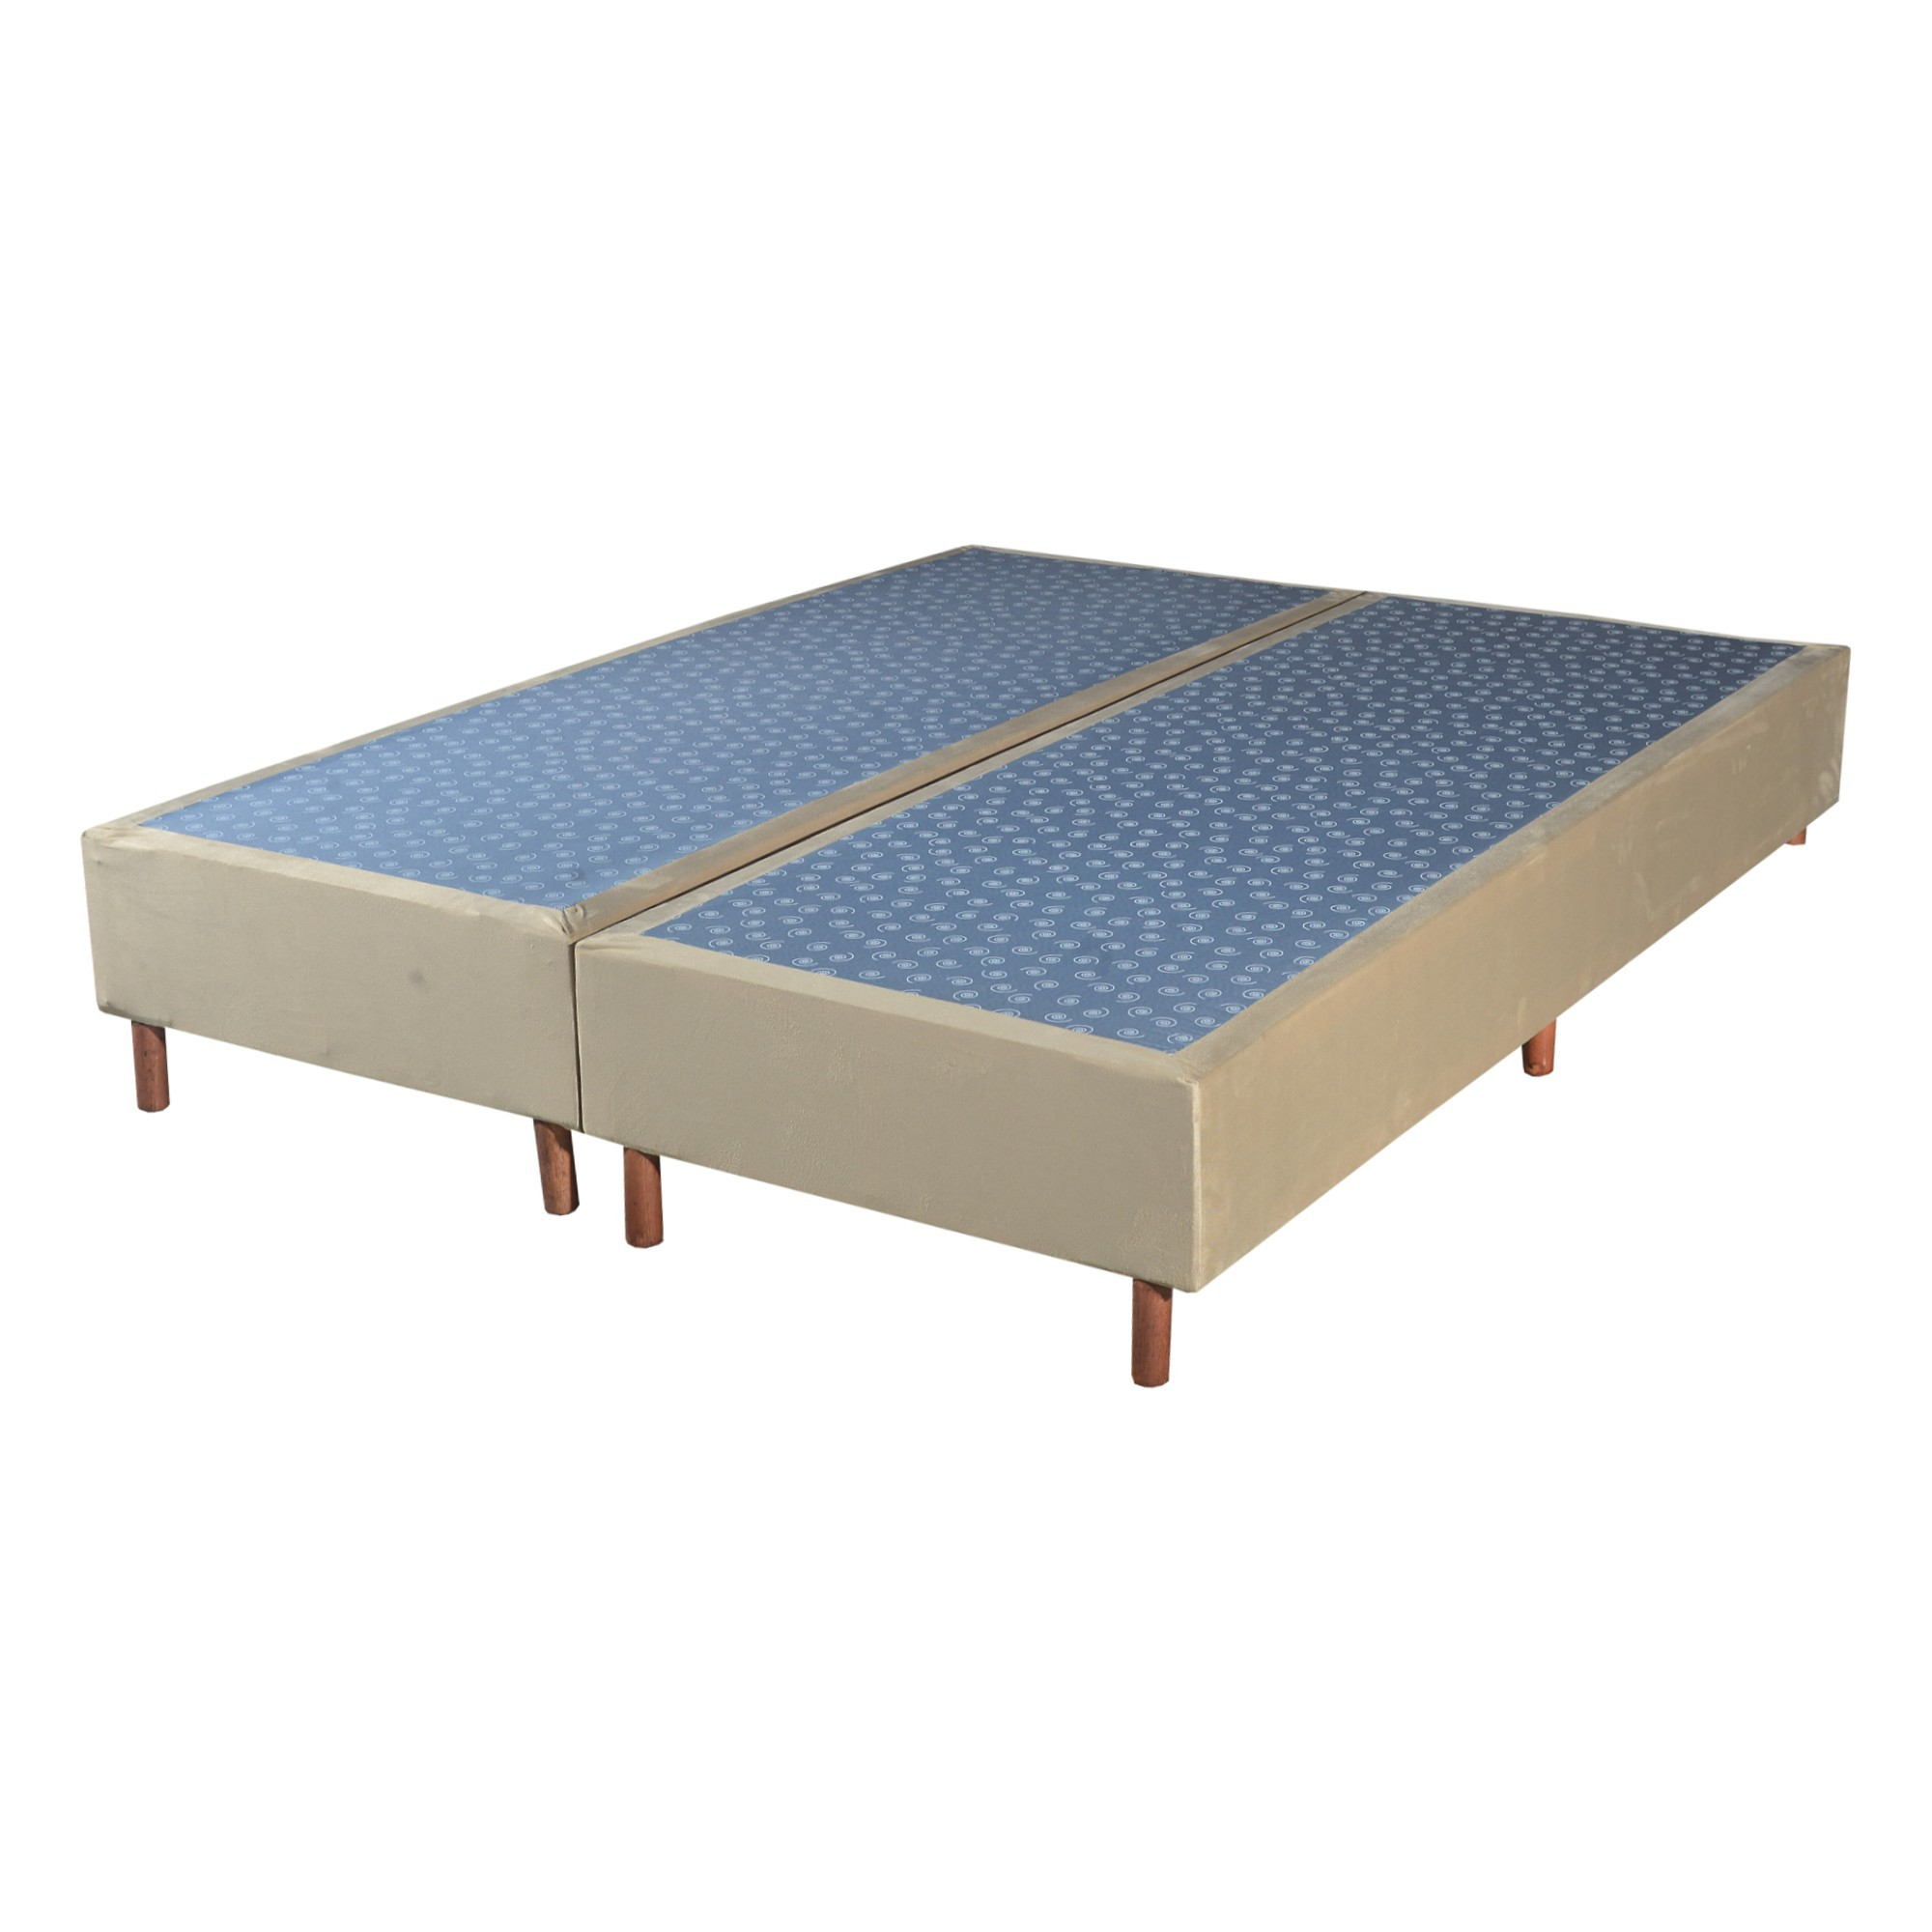 Cama Box Base King Veludo Bege 193x203x25